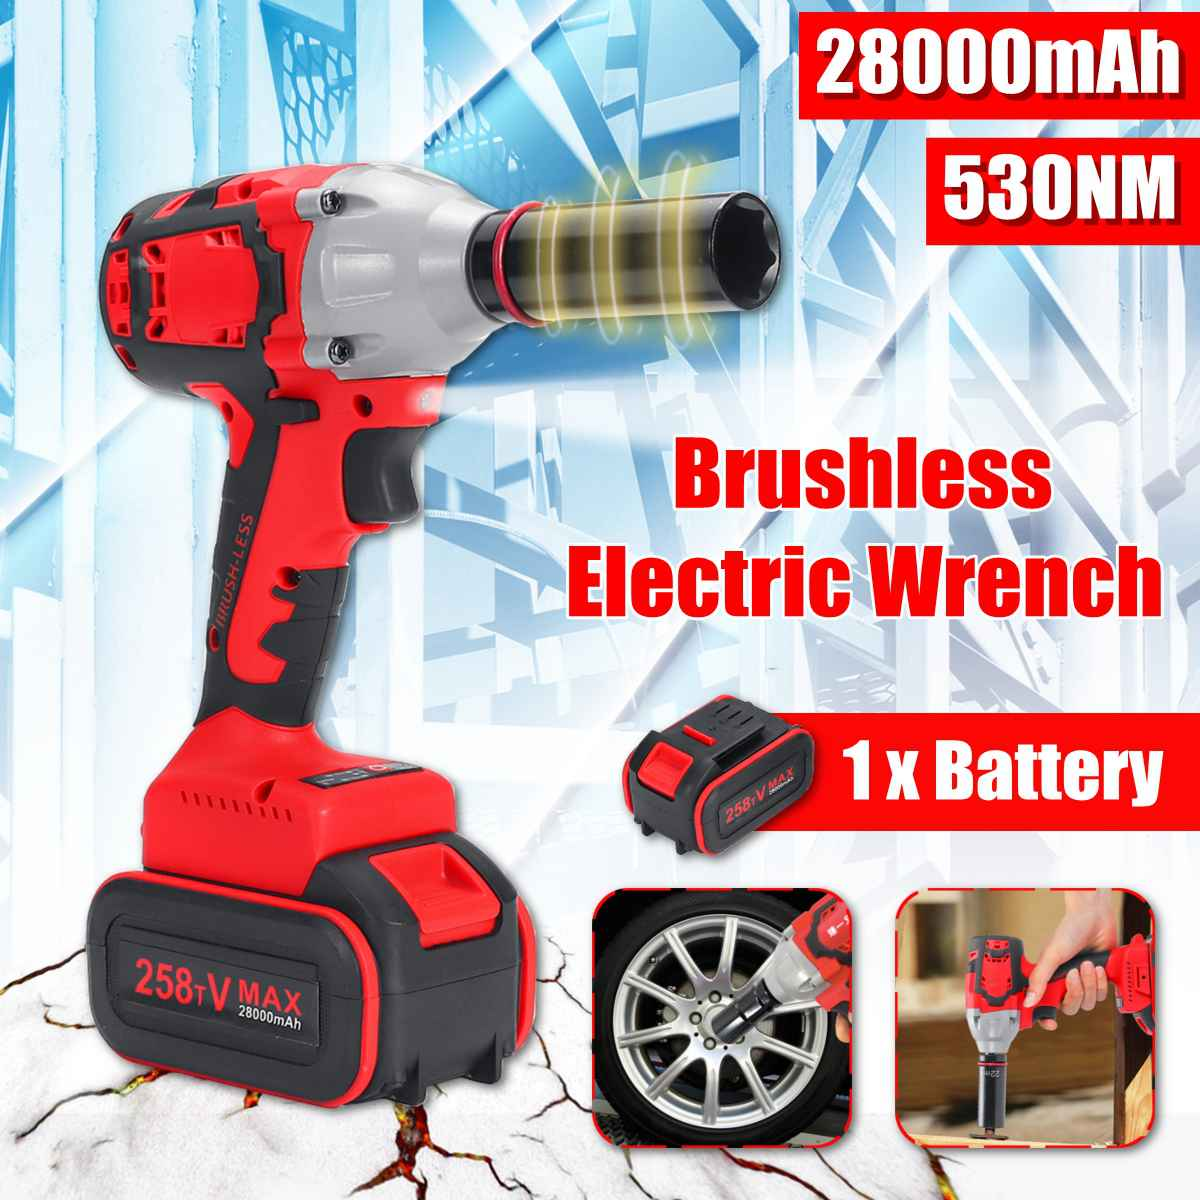 28000mAh 530Nm Cordless Electric Wrench 1/2'' Impact Wrench Power Driver Wrench Socket Tools Set W/1 Rechargeable Battery